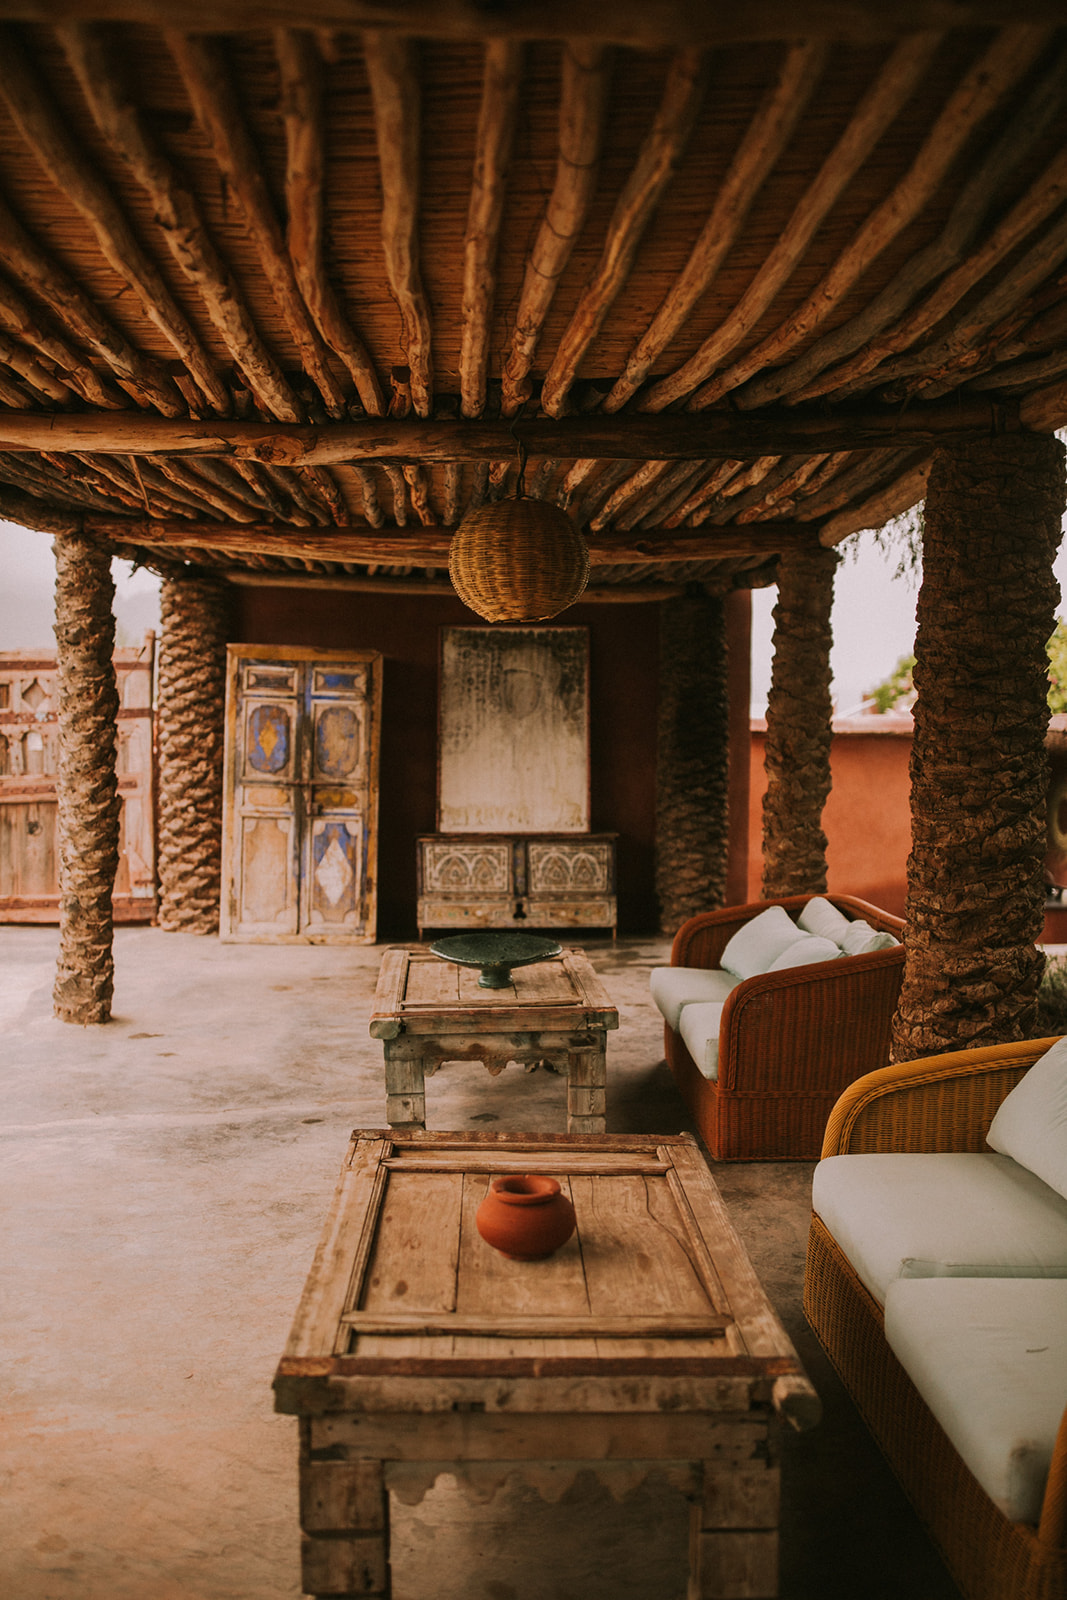 Kasbah Bab Ourika Wedding Venue